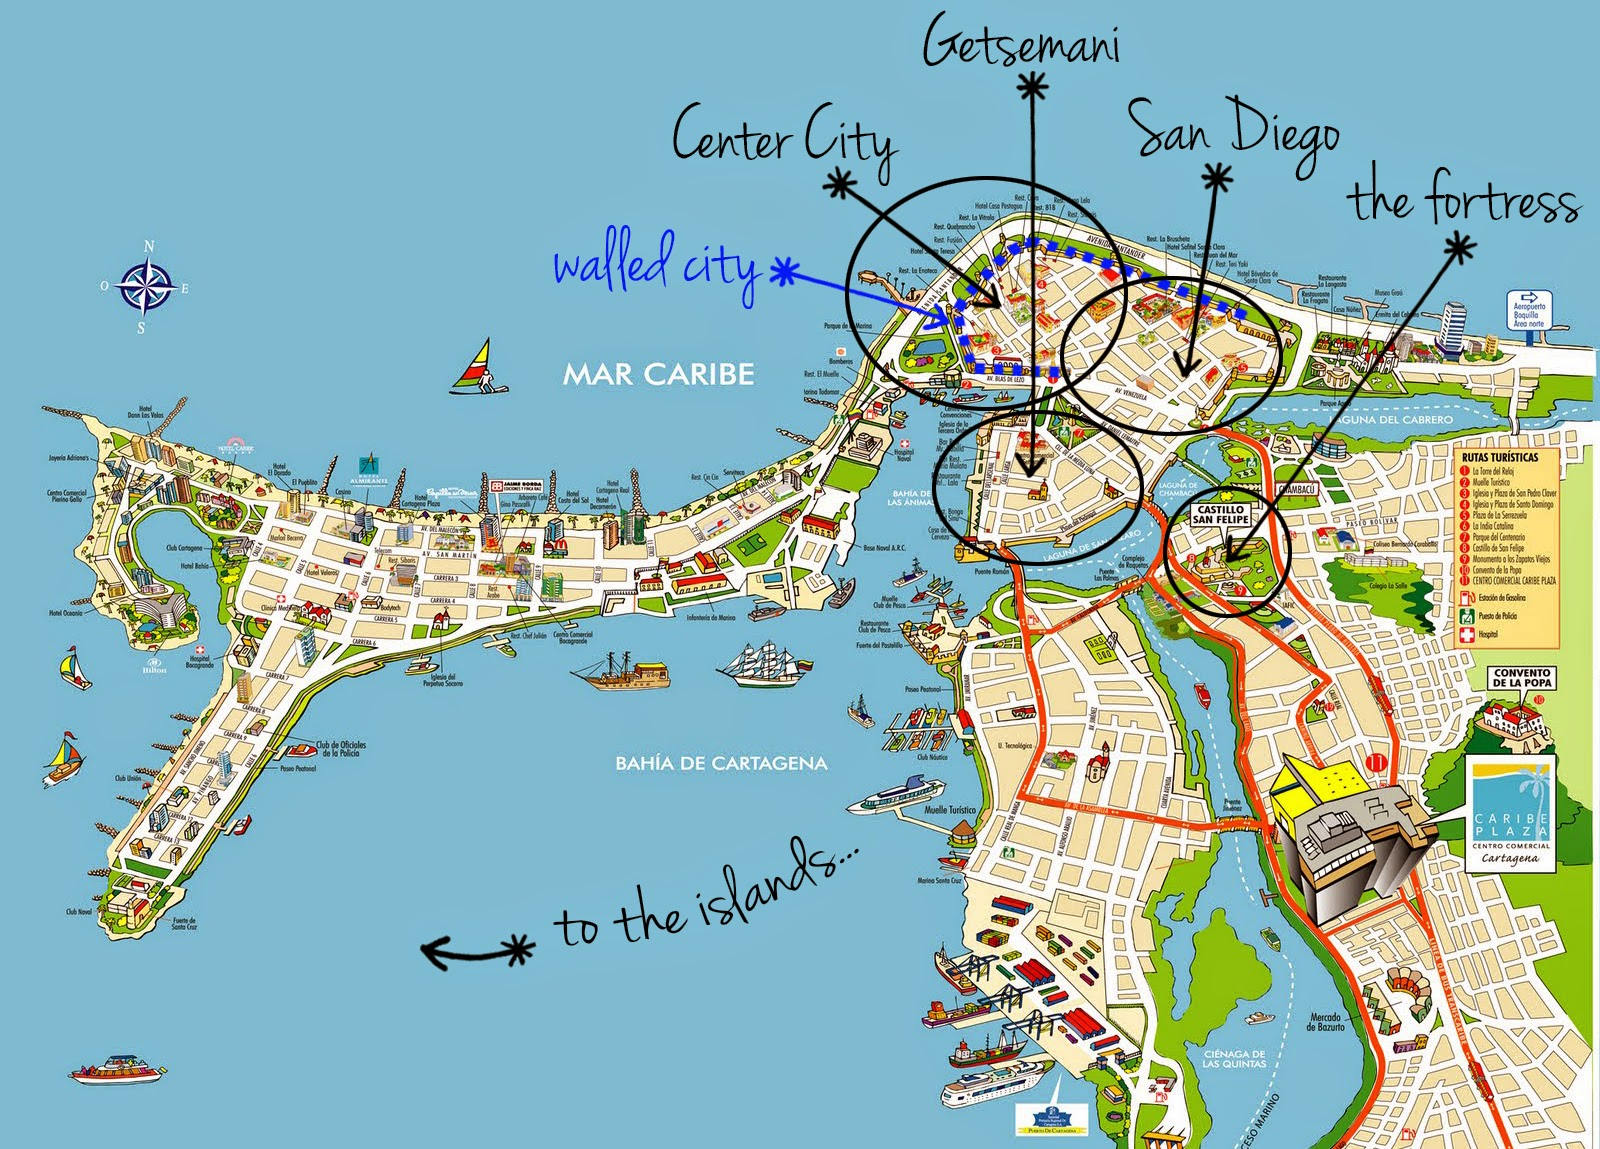 tx city map with Cartagena Walled City Map Of Tourist Vhjwu 7cwkrfu3urxkqsphszpjluo8gyuv3rjuzsv9tx 7c7lthqc2uzzls3xps310pcph4m9kfcgmxks0lj Mb9ya on Dinosaur World besides Dallas Rb Ezekiel Elliott Suspended 6 Games In Domestic Case additionally Cartagena Walled City Map Of Tourist VHjwu 7CwKRFu3urXKqSpHSzPJLUo8GyuV3Rjuzsv9tX 7C7LTHqc2uzzls3xps310PCPH4M9KfcgMxks0lJ Mb9YA as well Charter Jet To Laredo Texas likewise Albany ga.